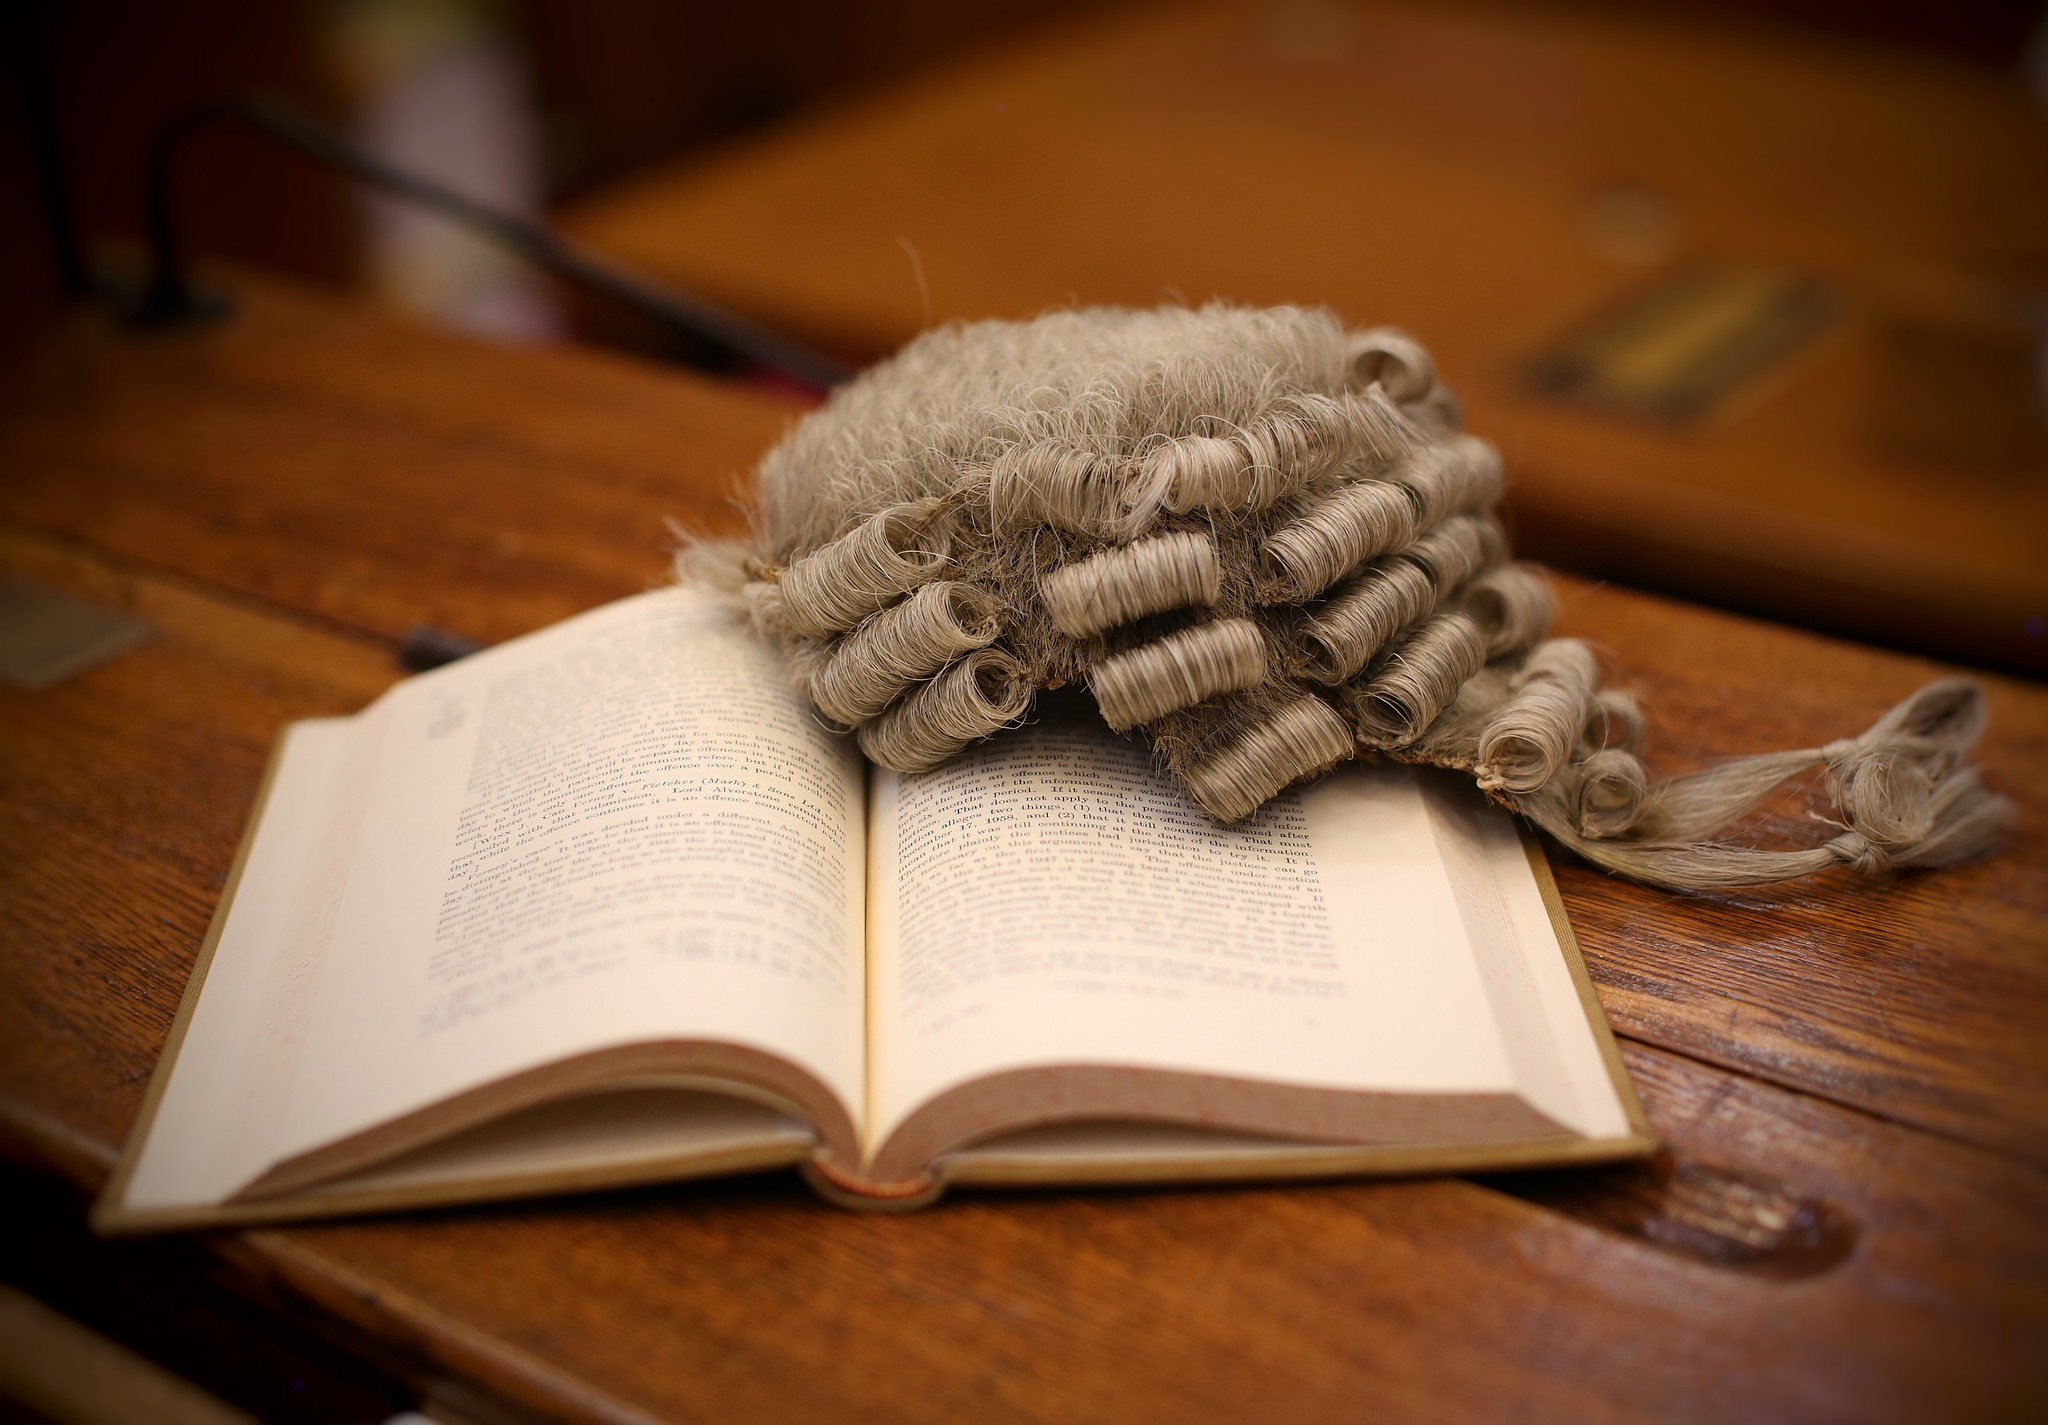 judge's wig and court text book